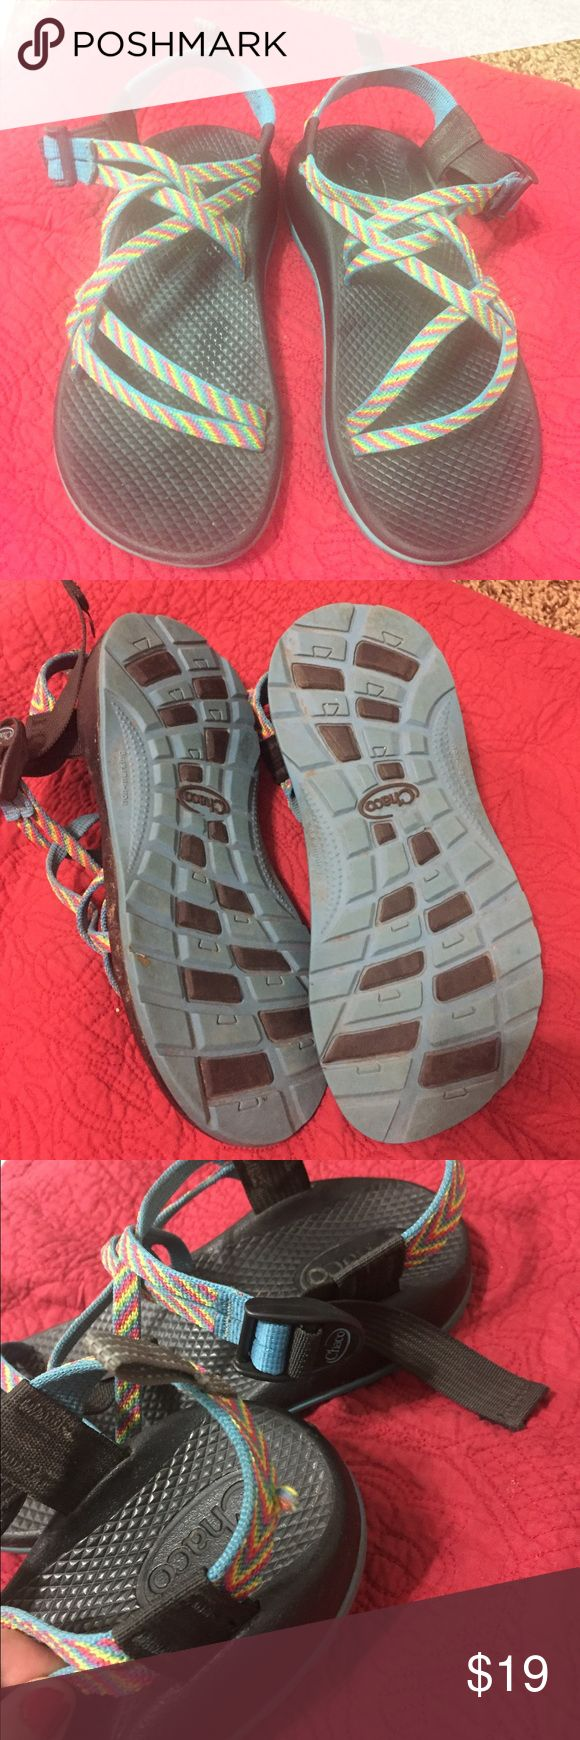 Chaco's sandals!  Fits size women 6,5 In good used condition. Worn 5/6 times or so. Kids, but fit a size 6/6.5 women's. Chaco Shoes Sandals